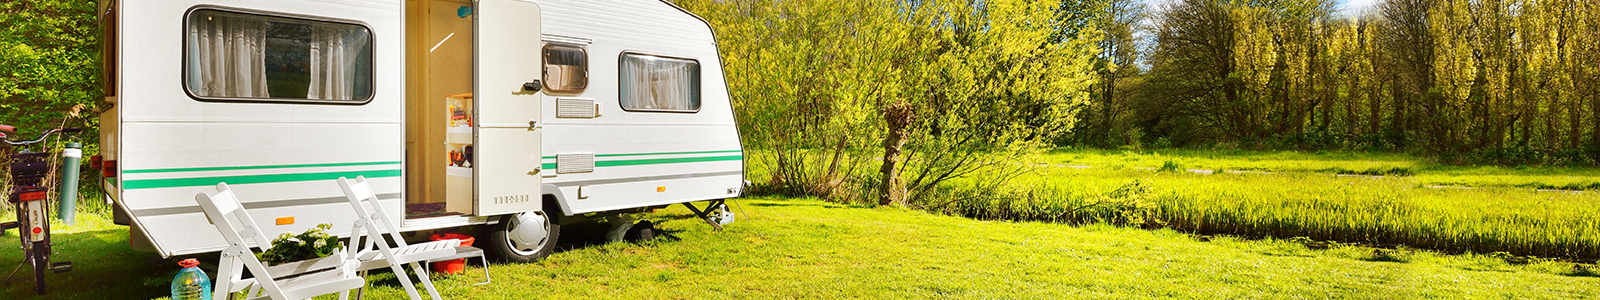 Expert Advice - Caravanning